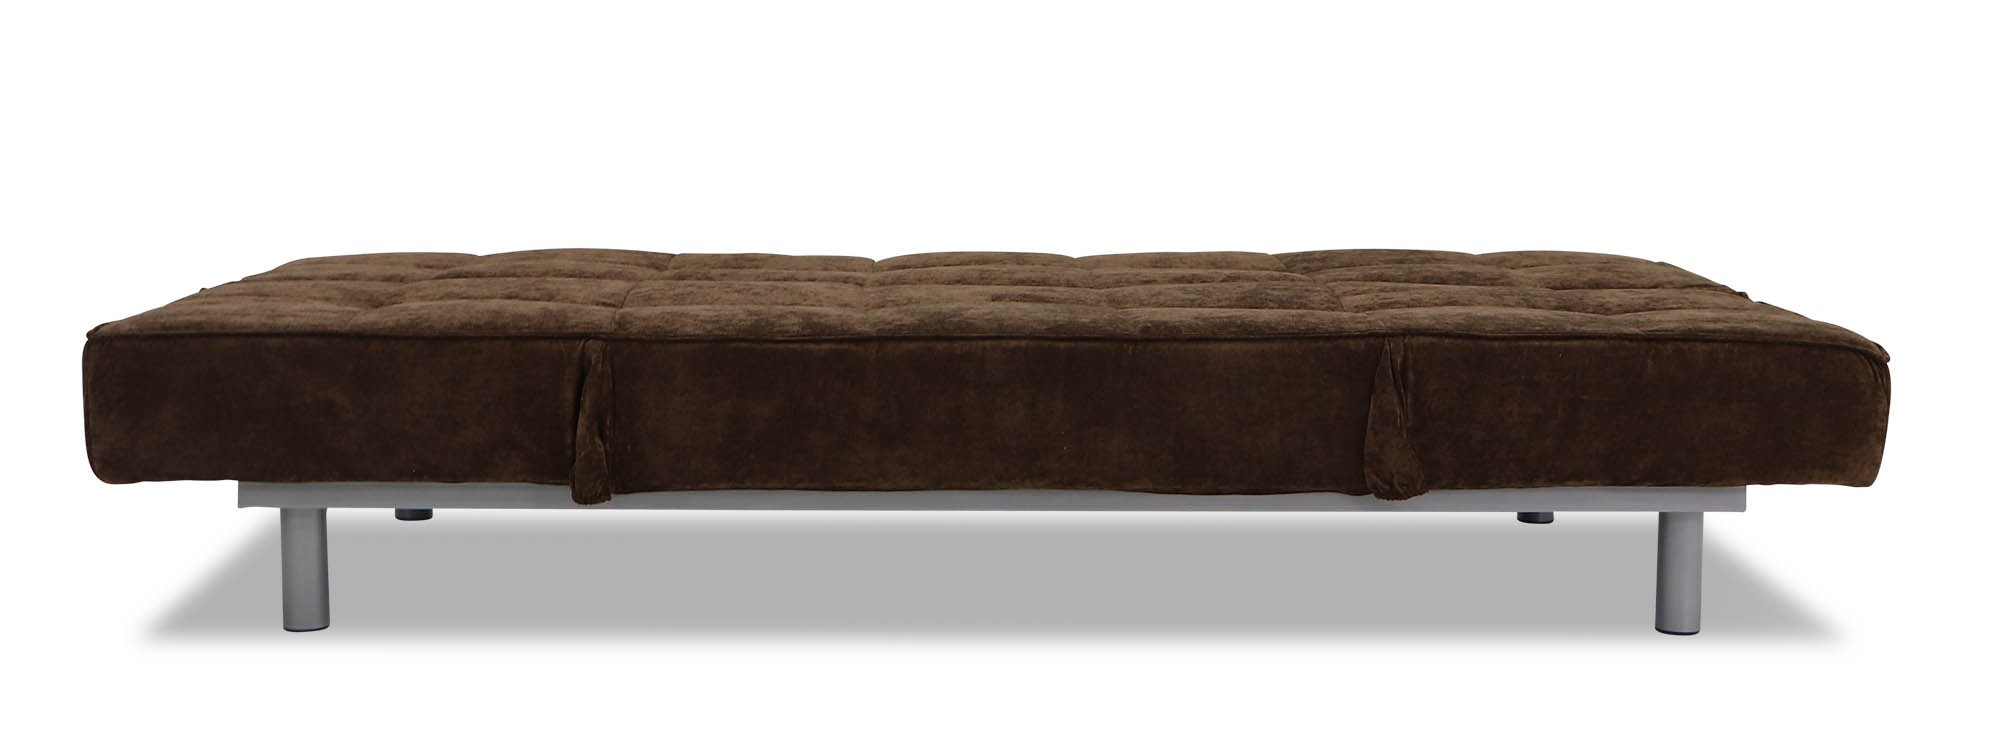 Sandro Sofa Bed Furniture Amp Home D 233 Cor Fortytwo